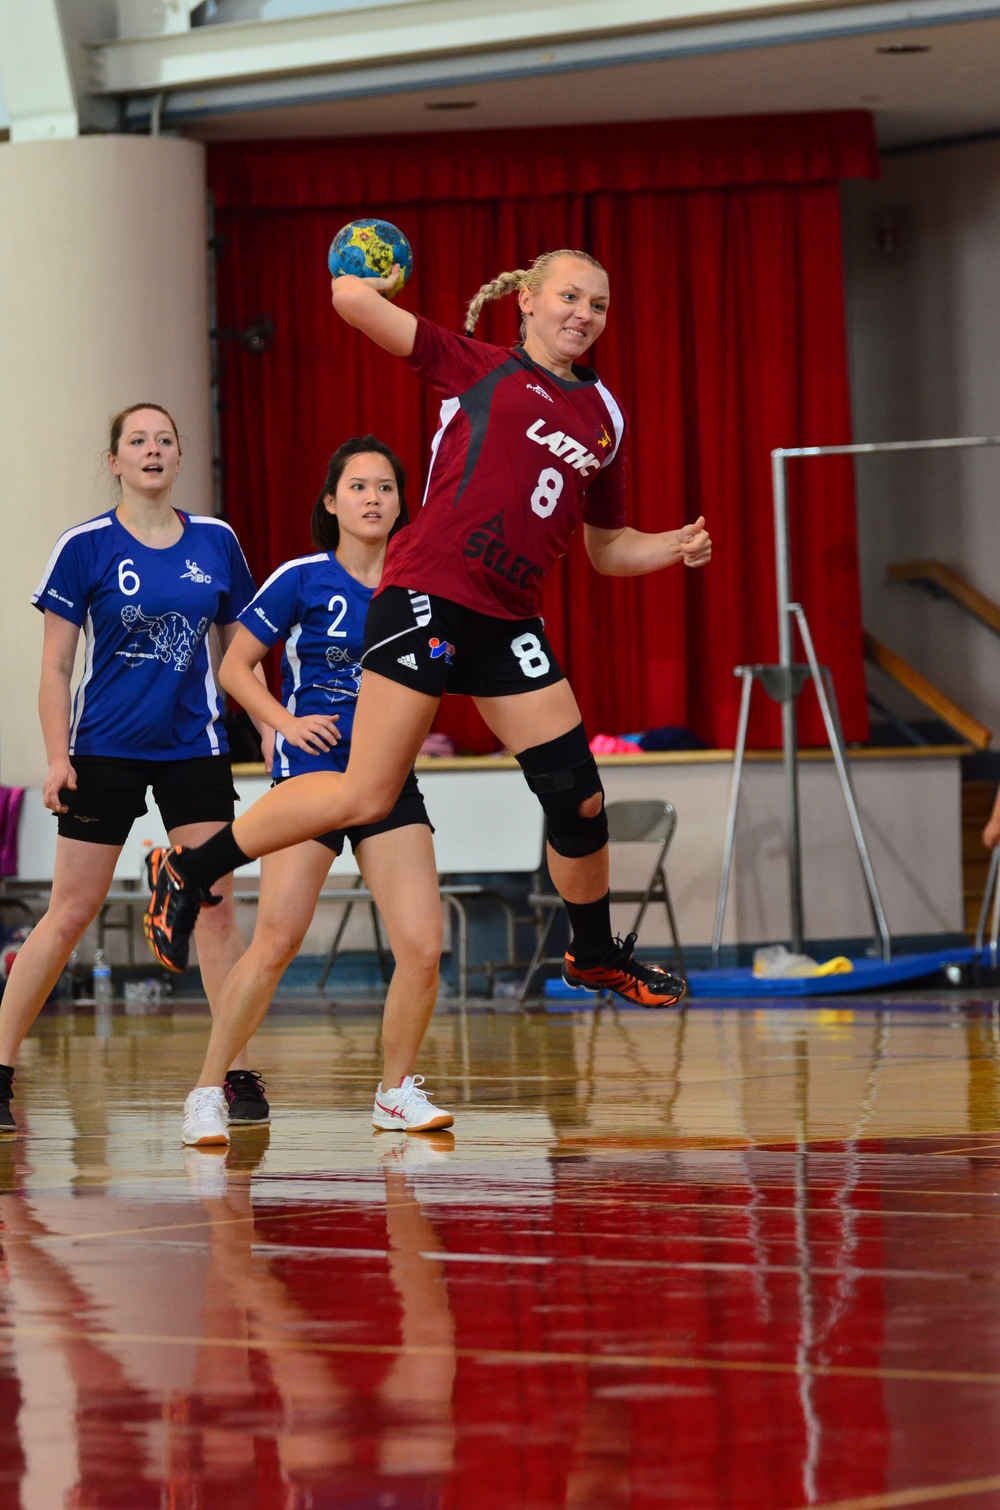 The steady LA back and wing player Olga Bunton in a jump shot. Photo by Atticus Overbay, LA Team Handball photographer